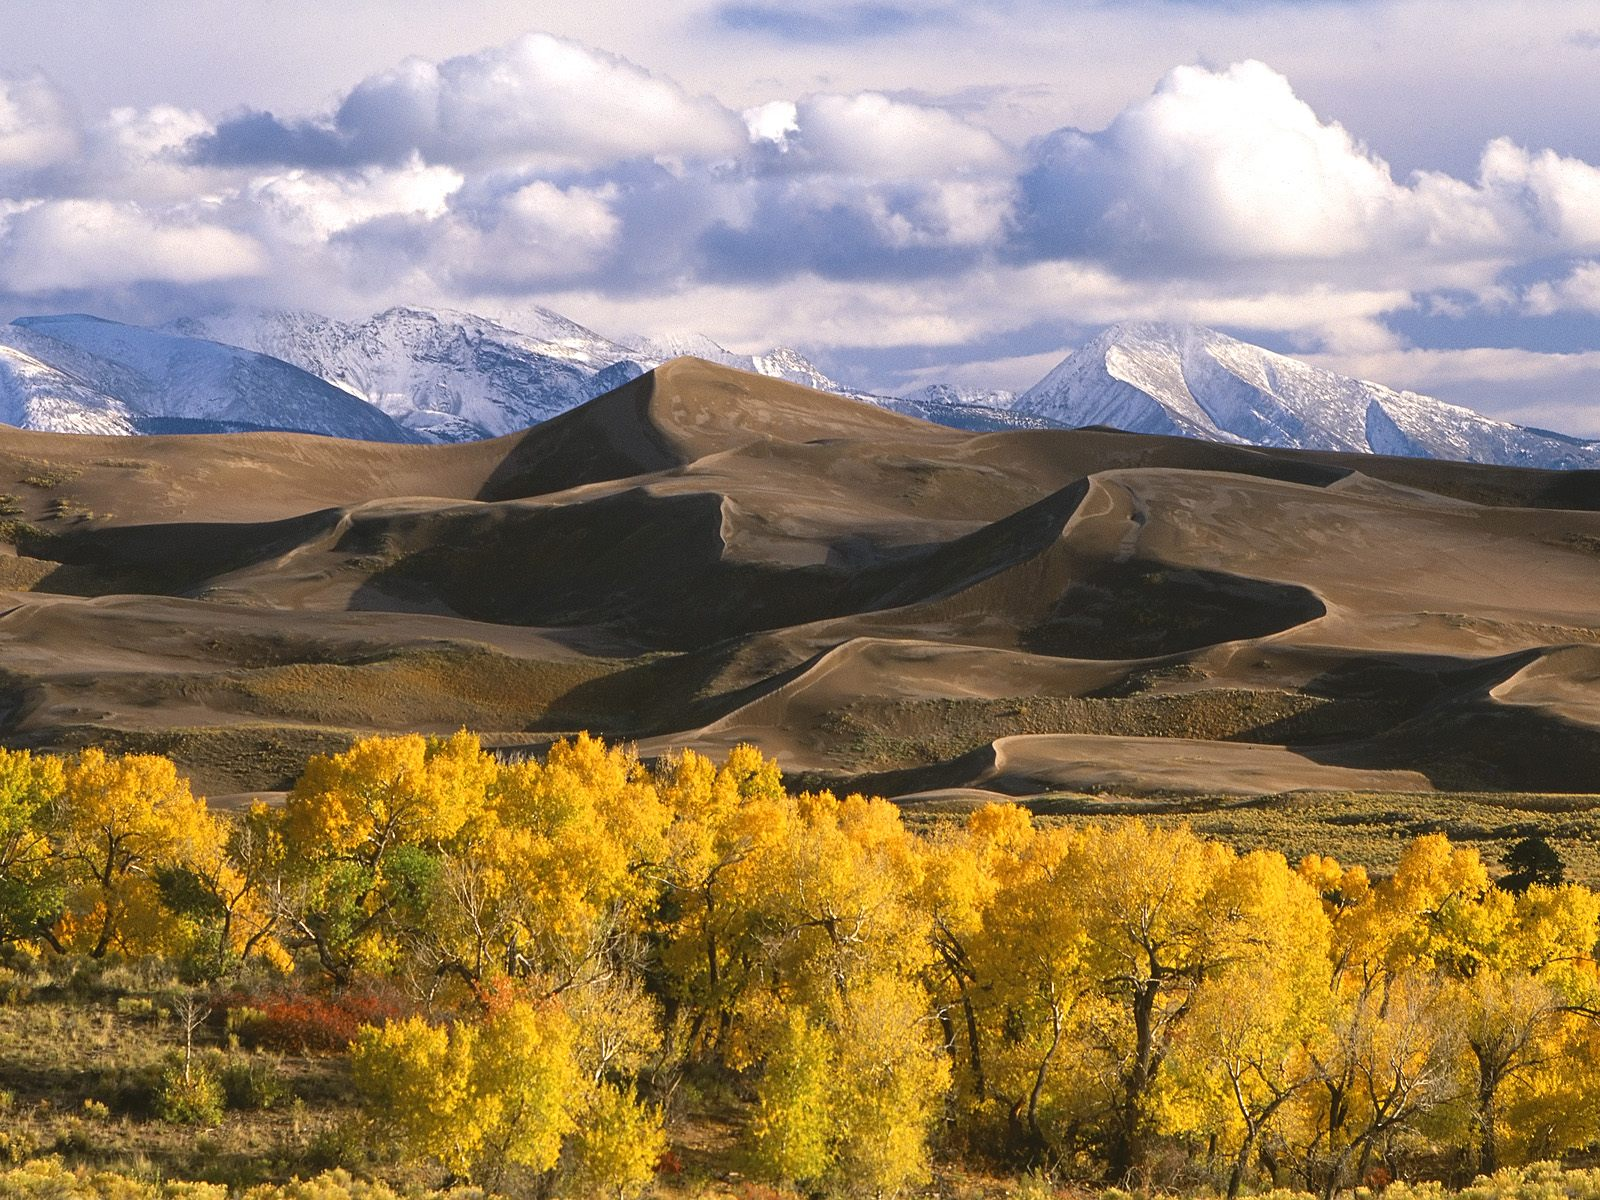 Dunes and Fall Color Colorado 1600 x 1200